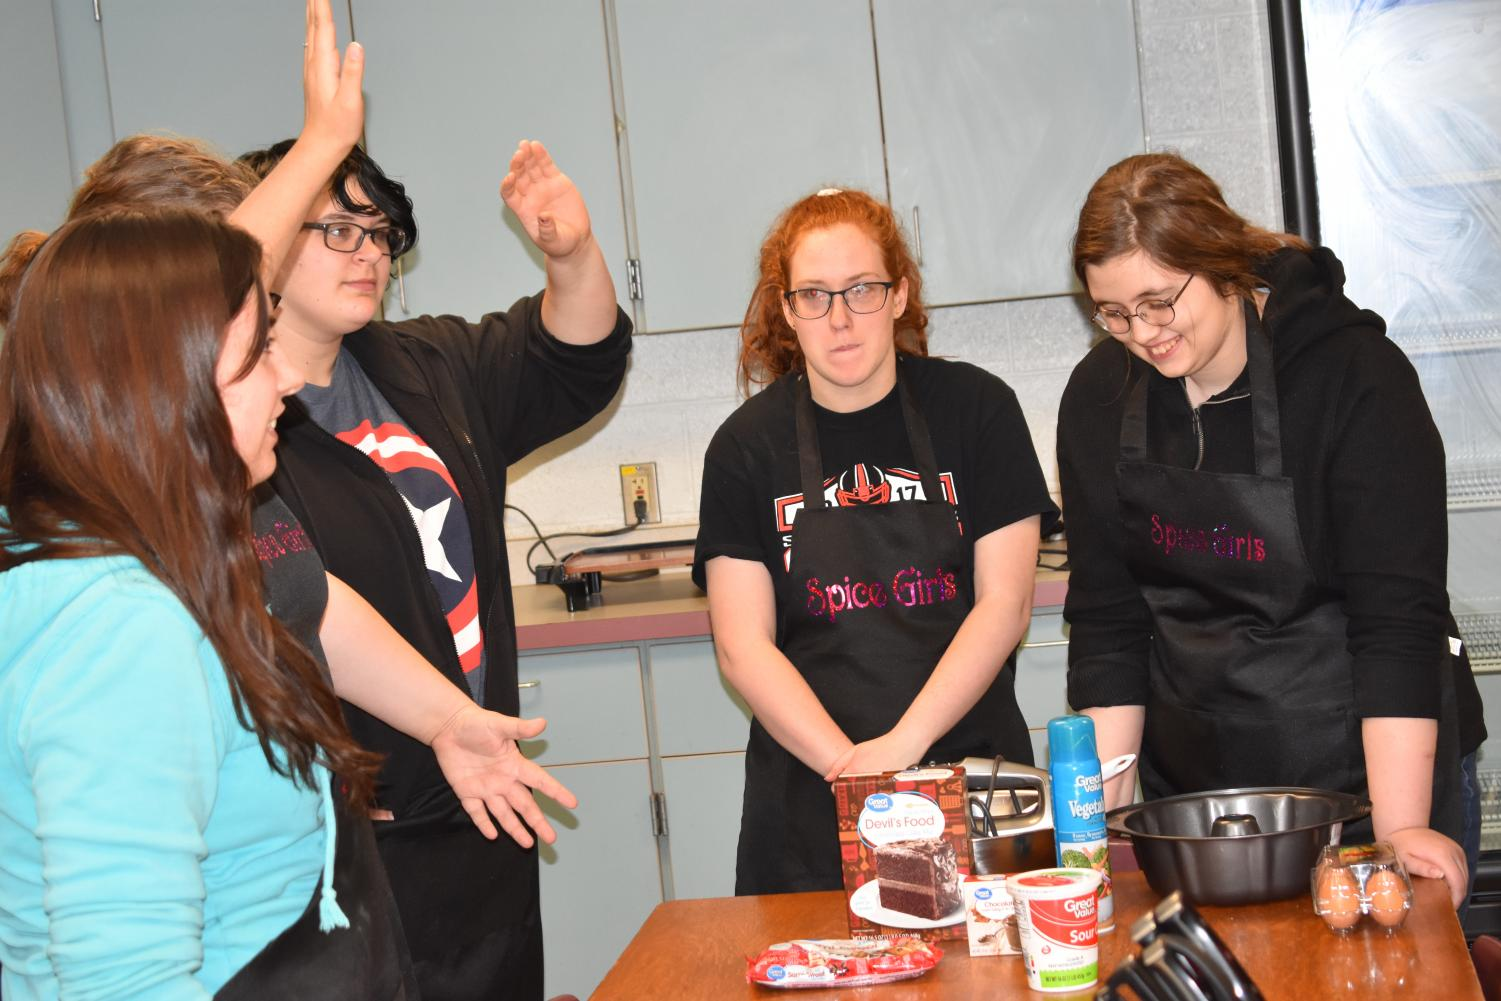 SLHS Spice Girls interact with various ingredients and things.